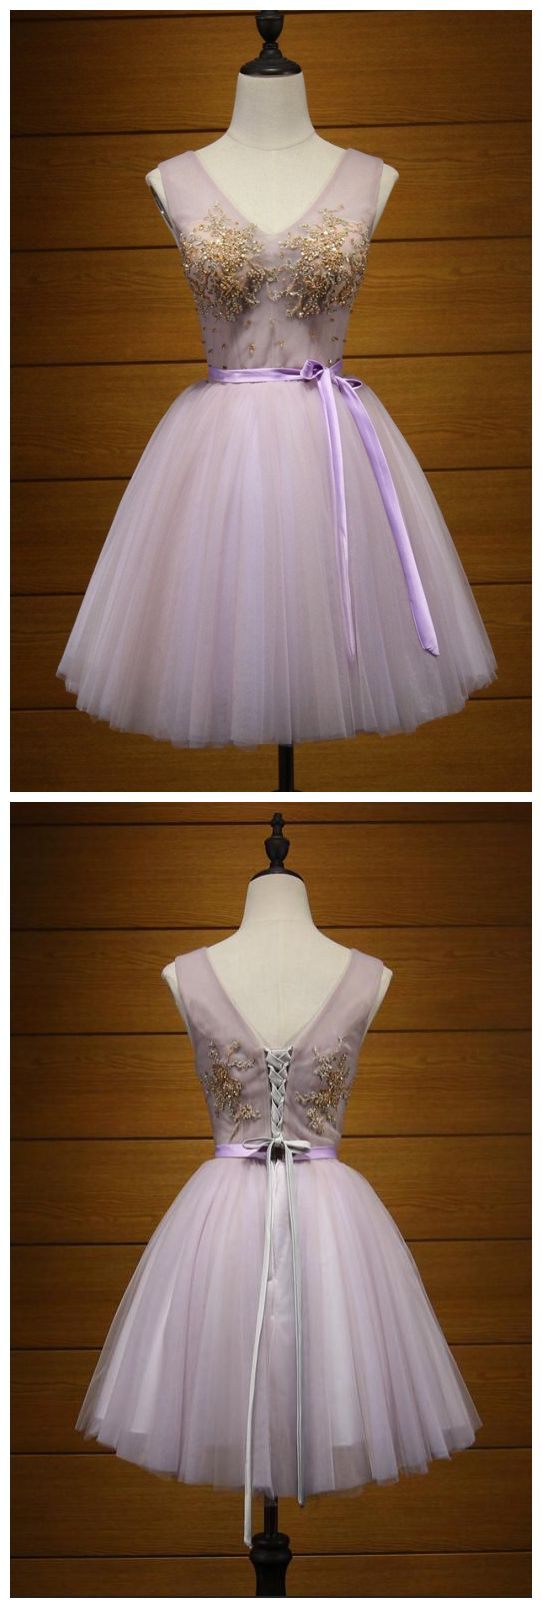 A-line Homecoming Dress V-Neck Short/Mini Prom Dress Juniors Homecoming Dresses,E0827